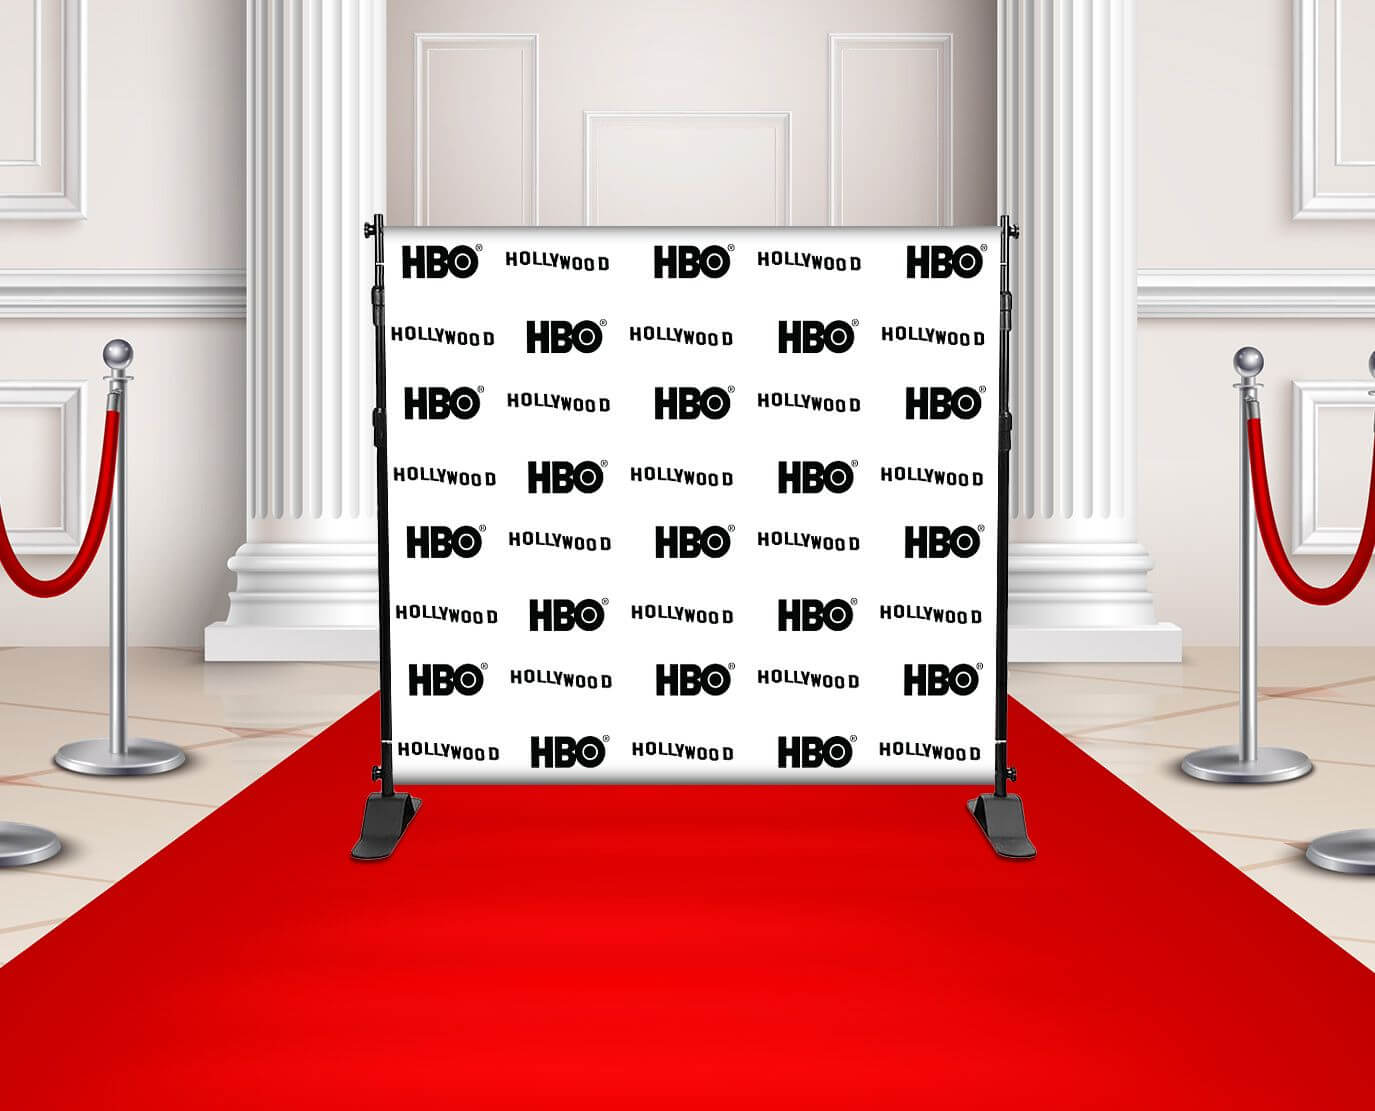 Enhance Your Red Carpet Event With Step And Repeat Banners